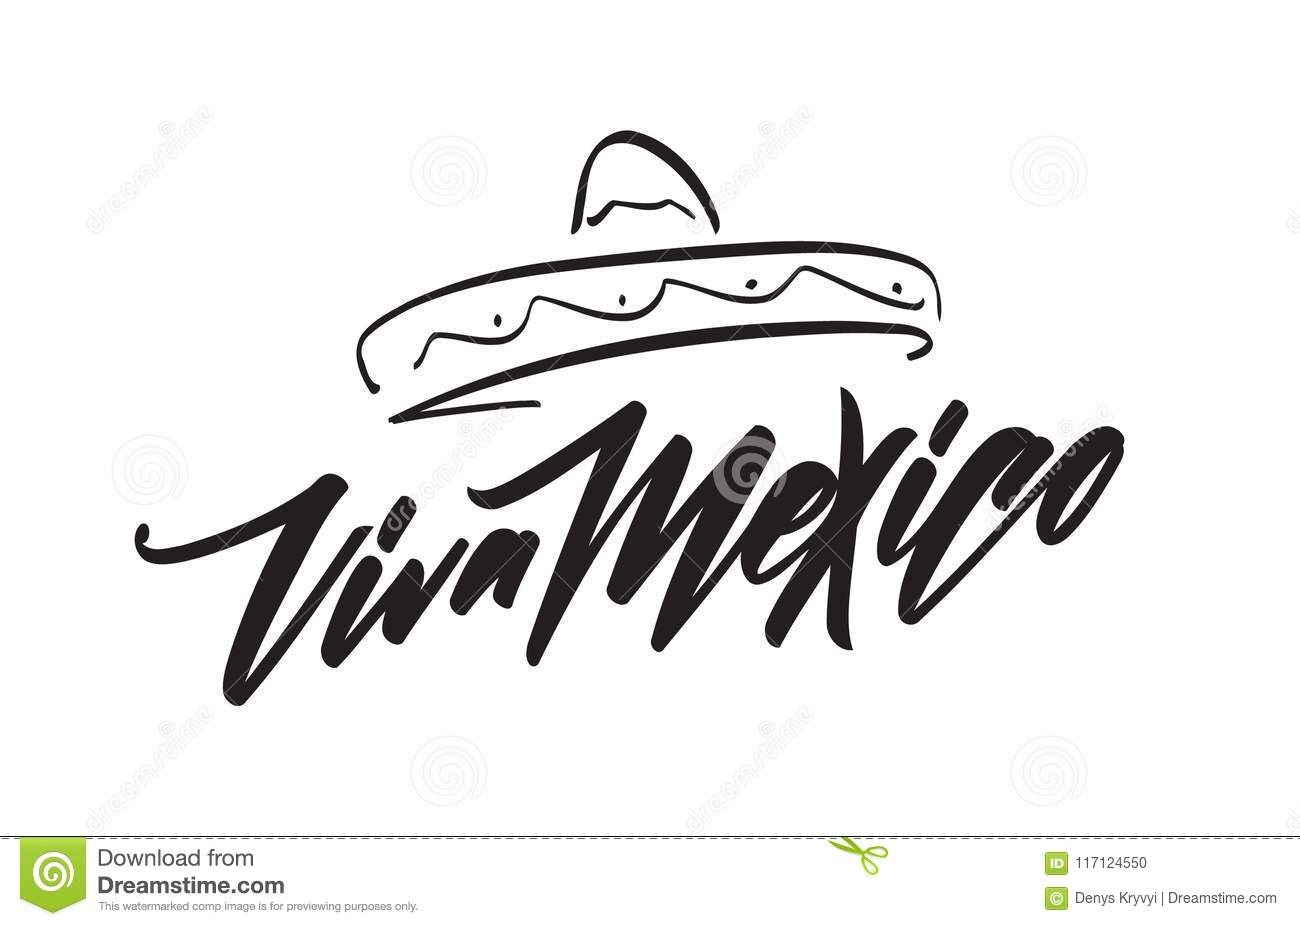 Handwritten Lettering Of Traditional Mexican Phrase